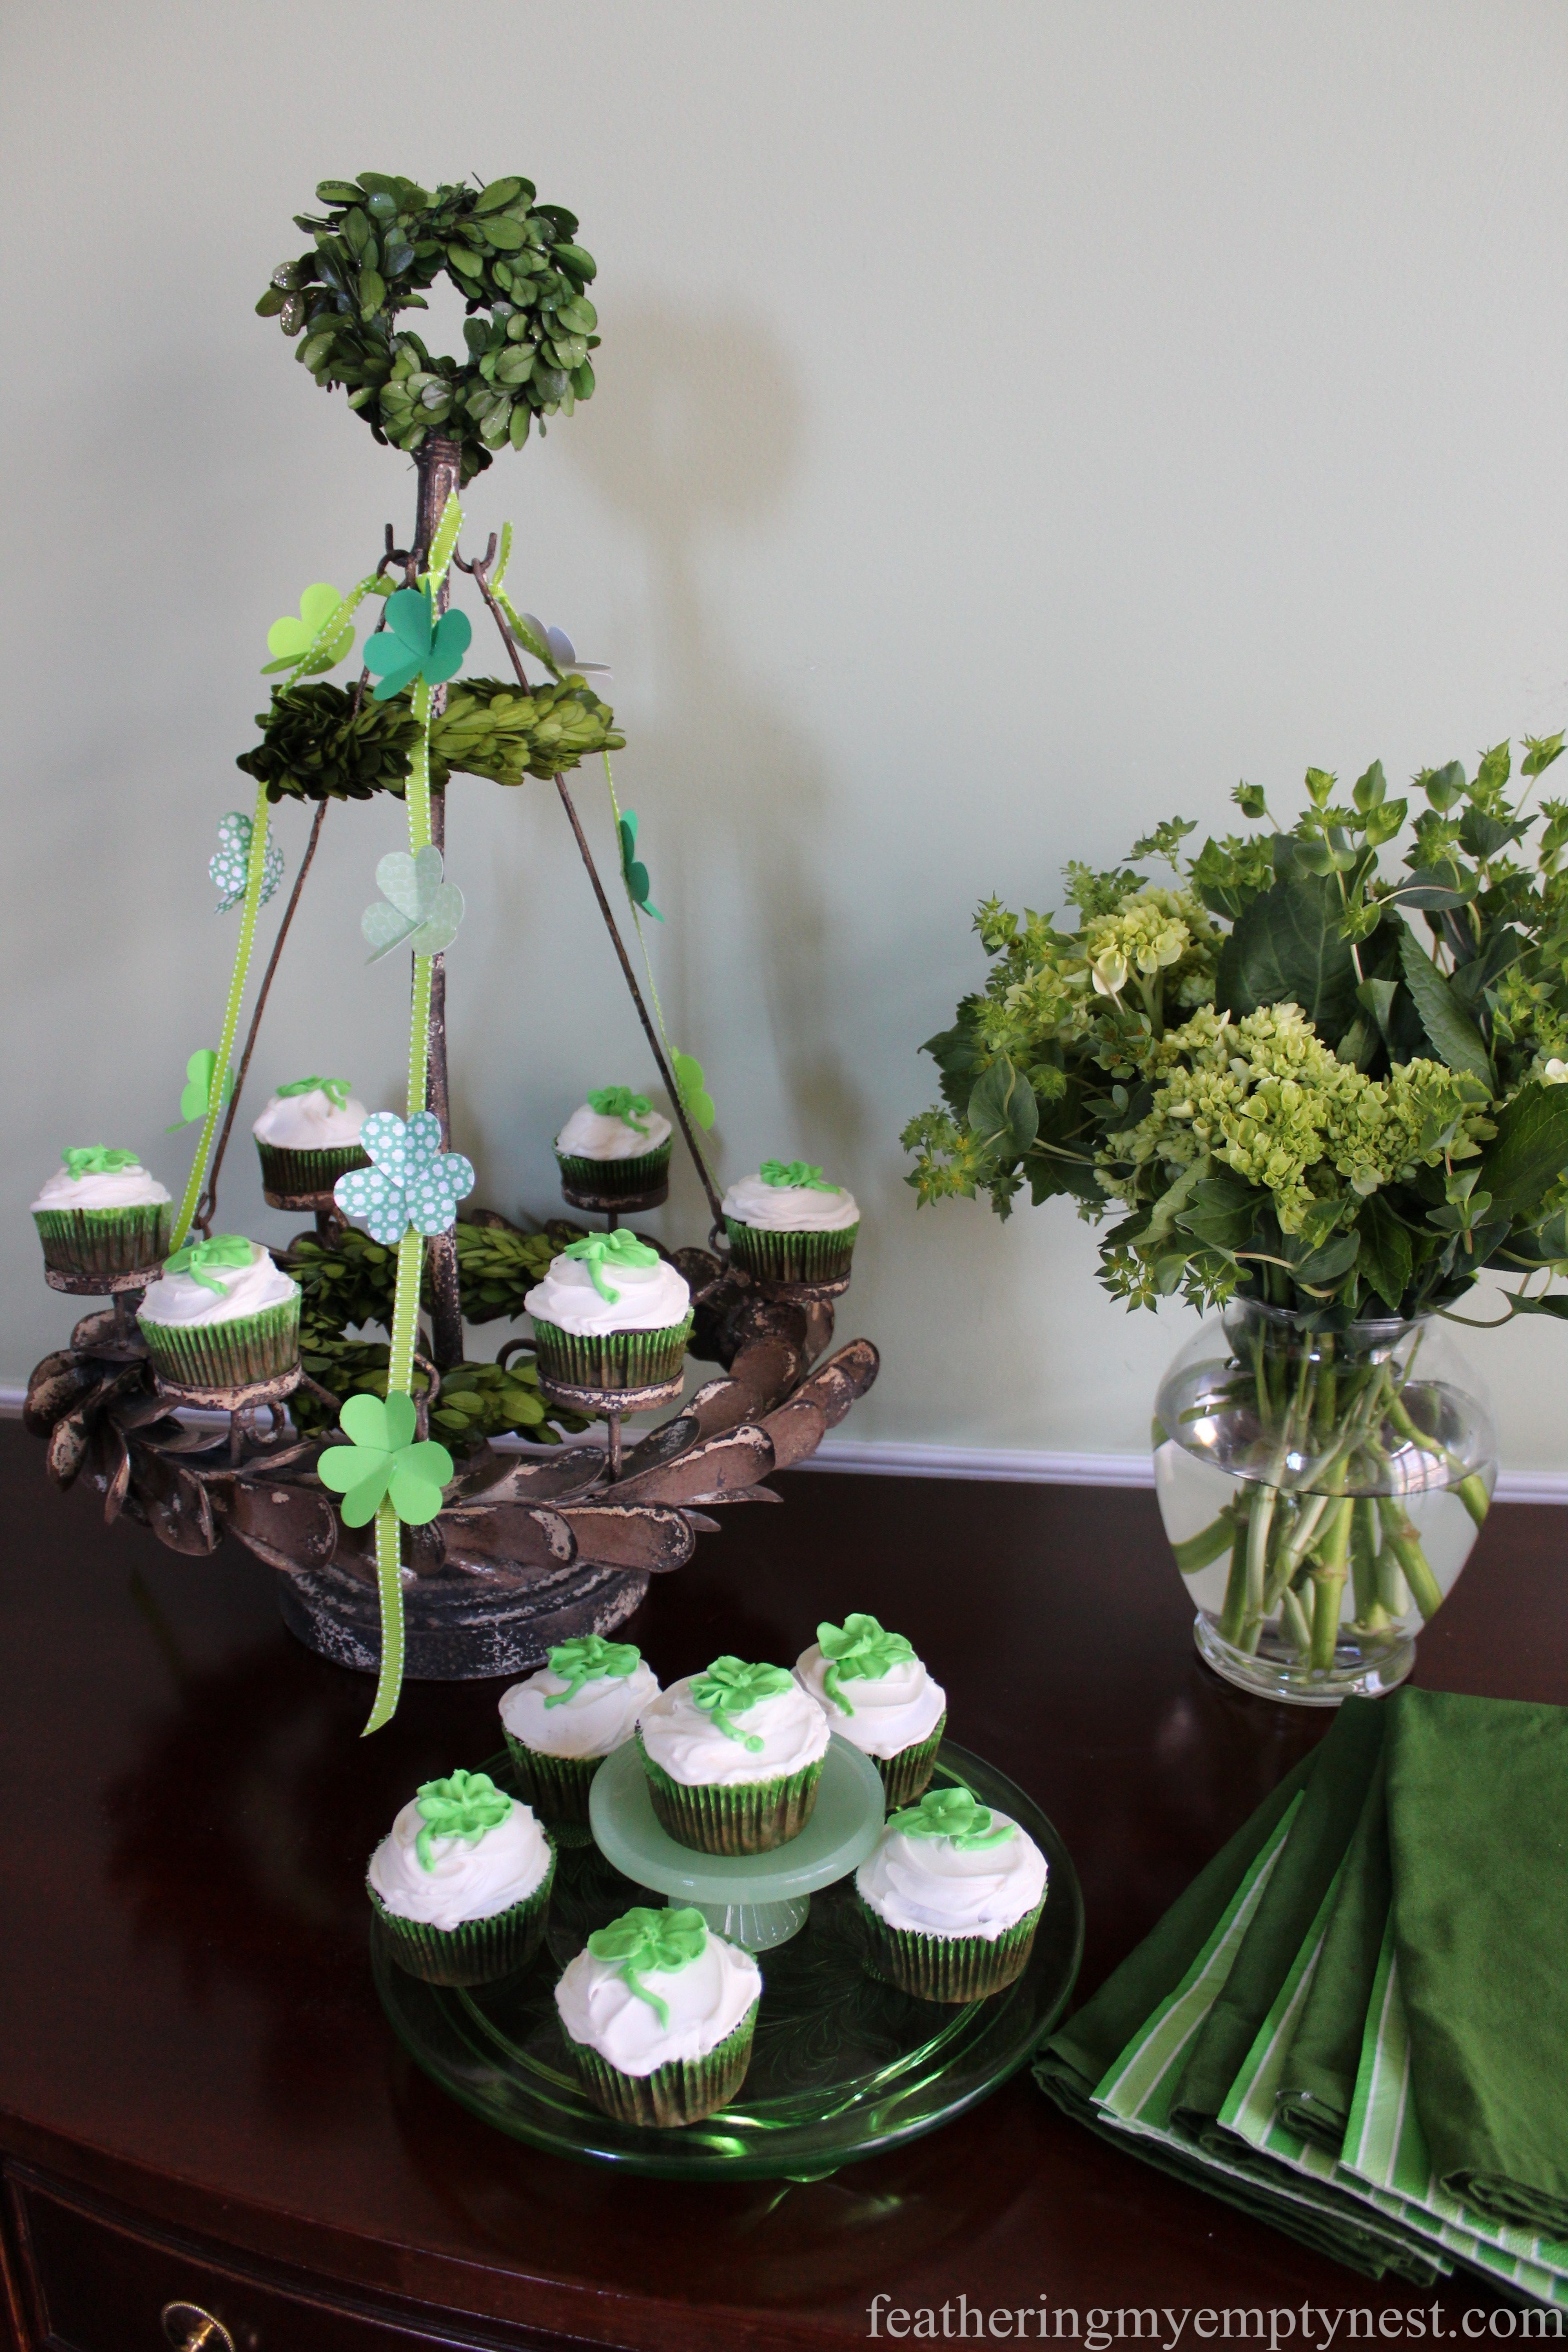 St. Patrick's Day Irish Cream Shamrock Cupcakes